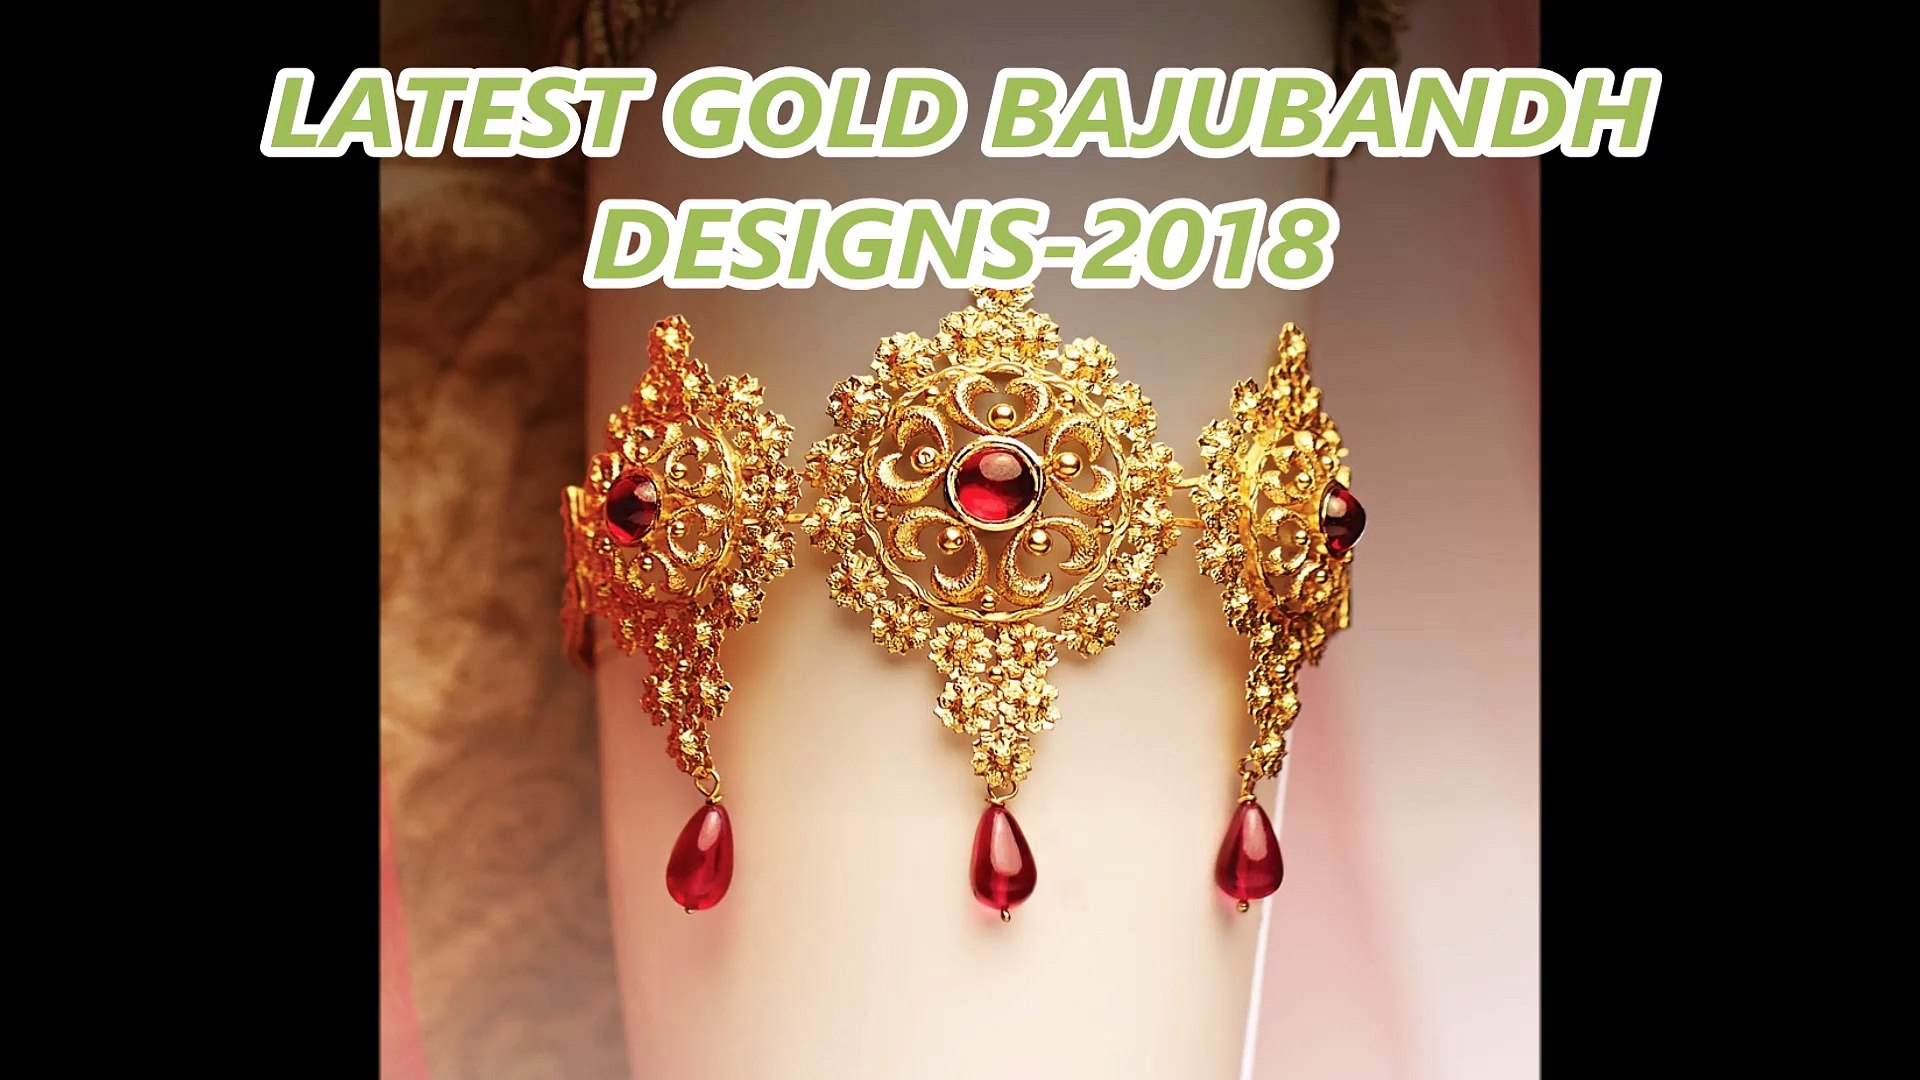 c9a8082a53a8d LATEST GOLD BAJUBANDH DESIGNS-2018, GOLD JEWELLERY COLLECTION